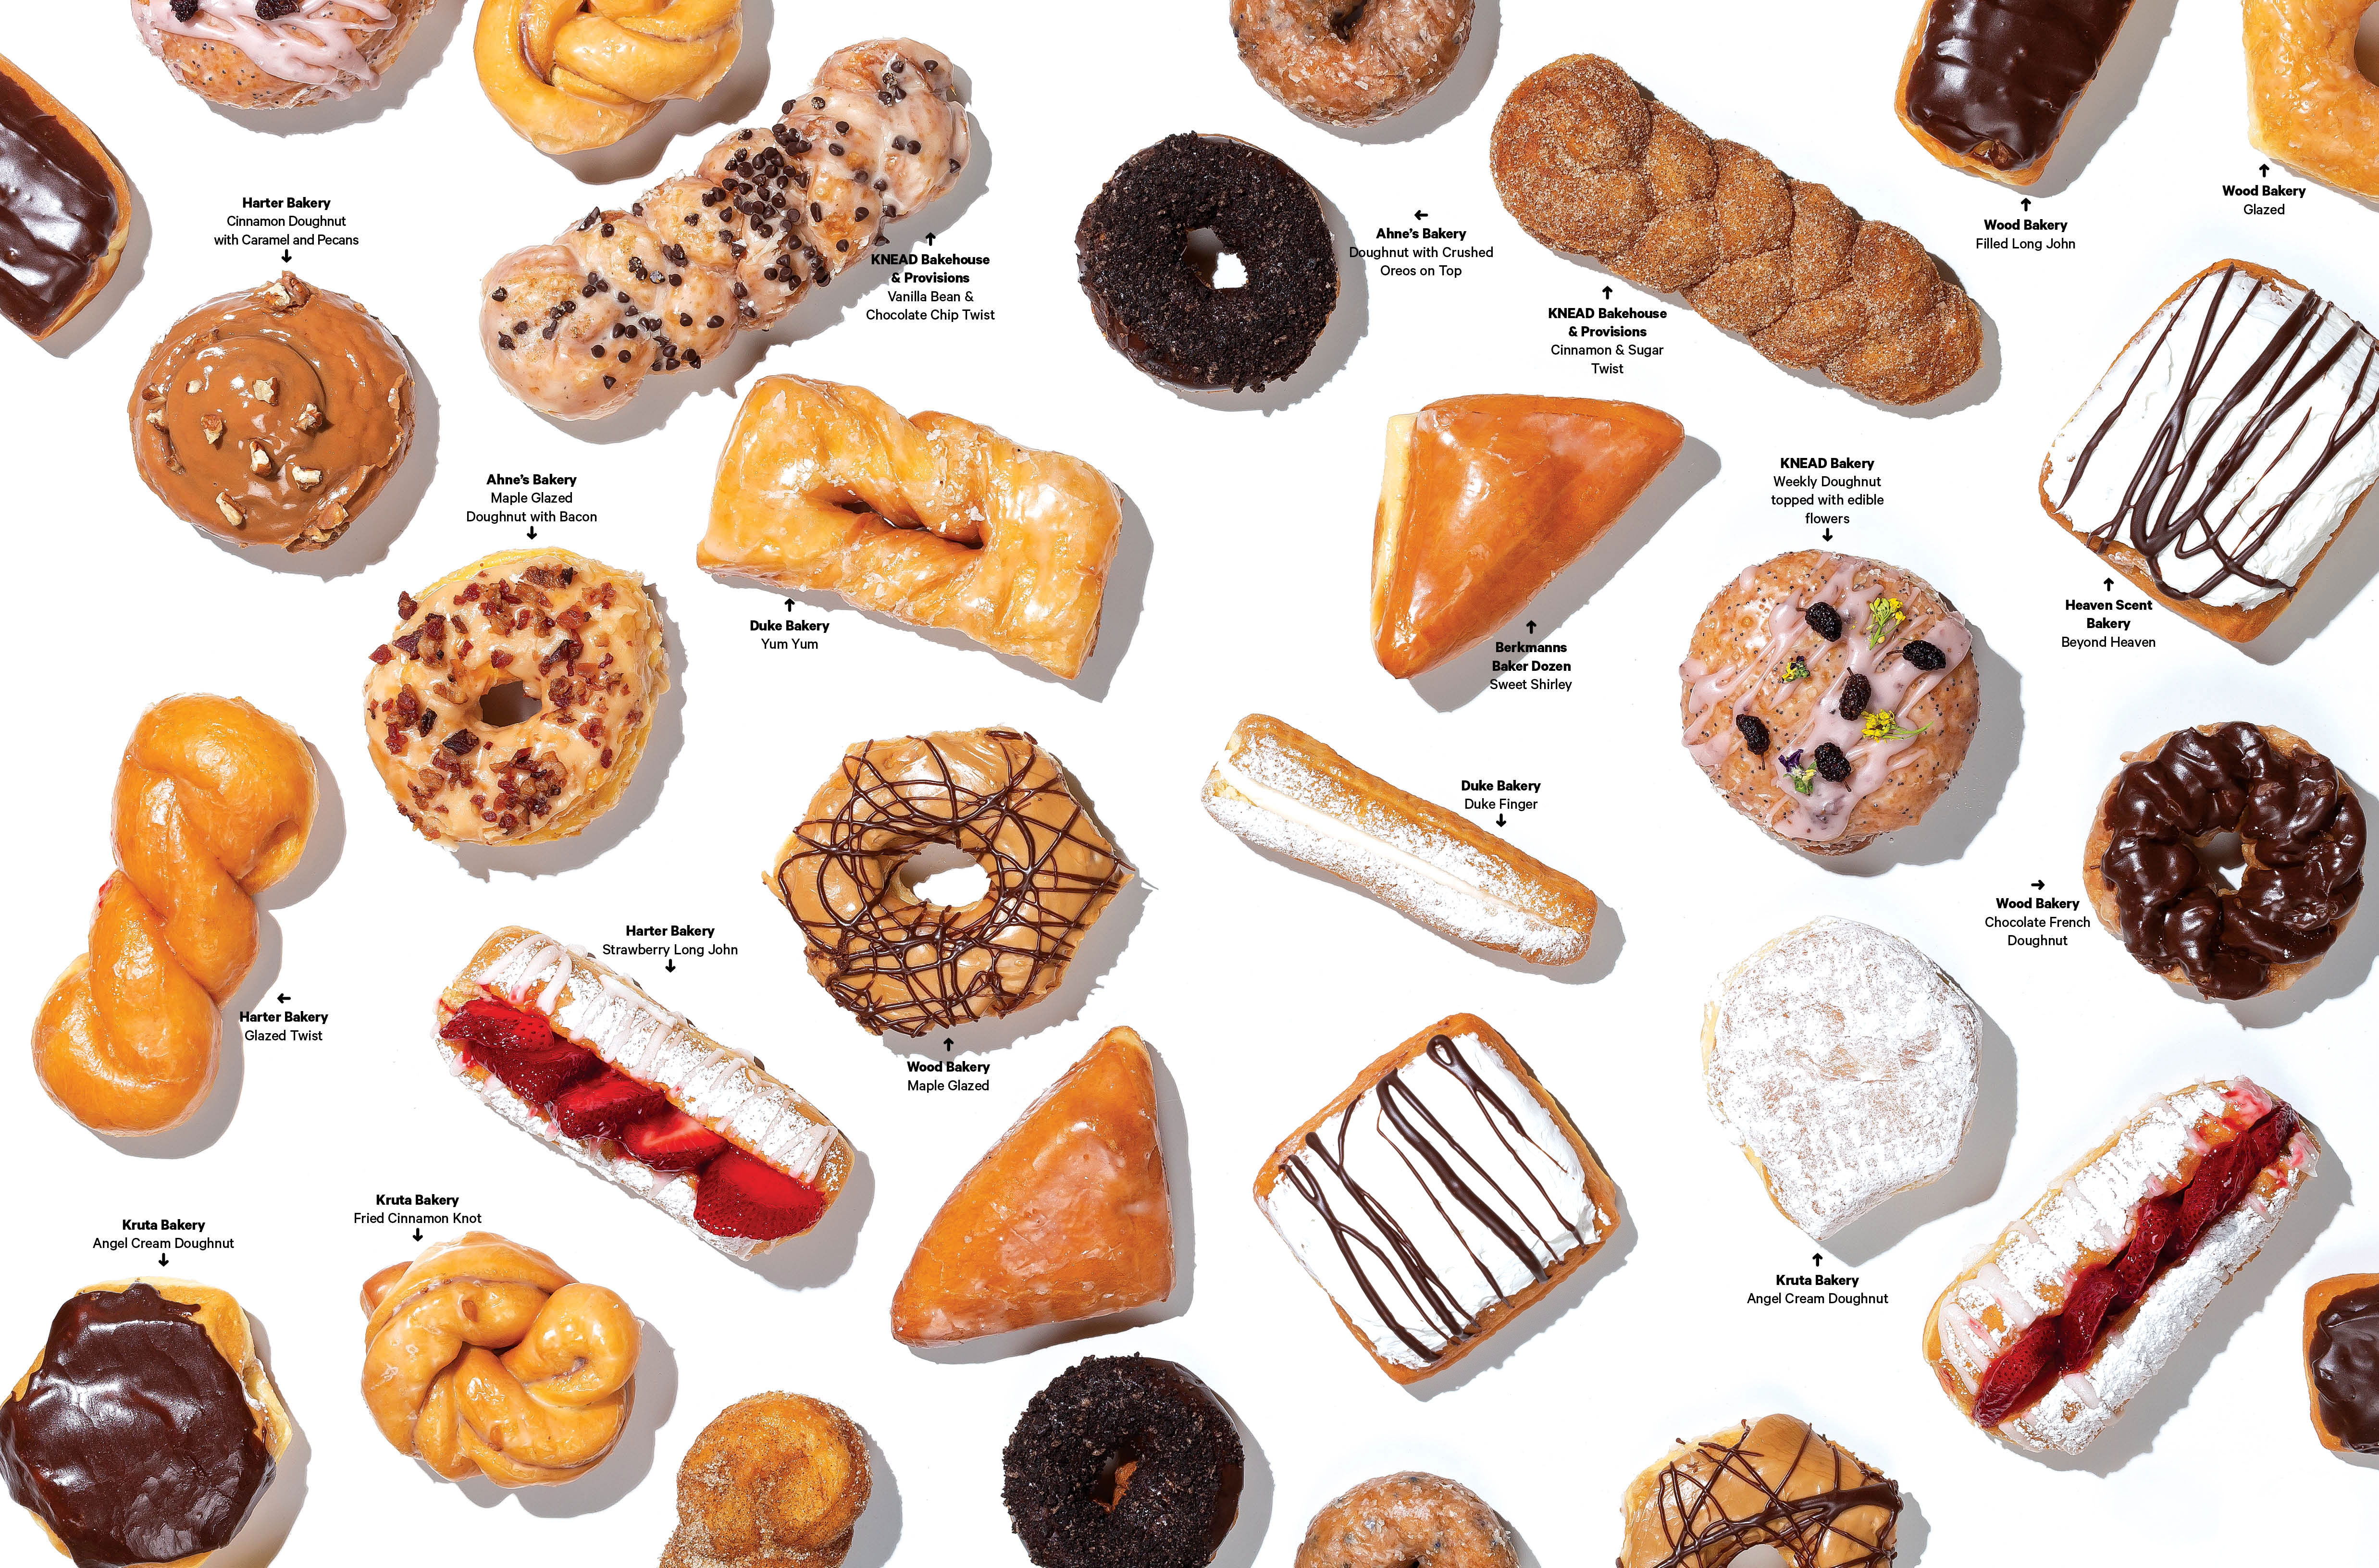 These St. Louis bakeries also offer standout doughnuts. (Photo by Kevin A. Roberts)